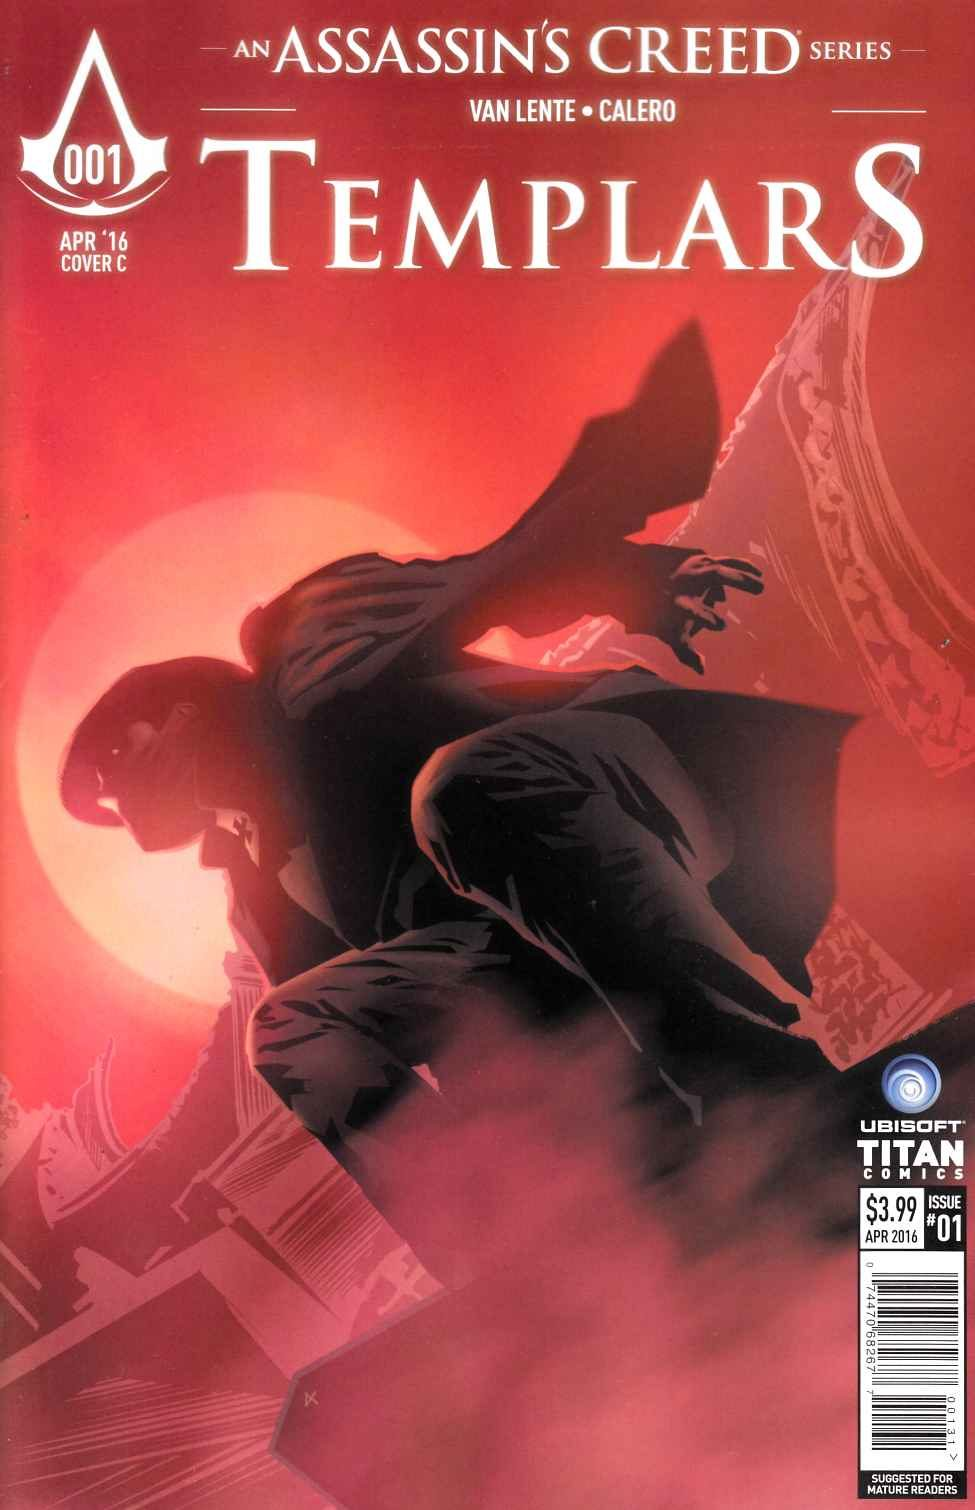 Assassins Creed Templars #1 Cover C- Calero [Titan Comic]